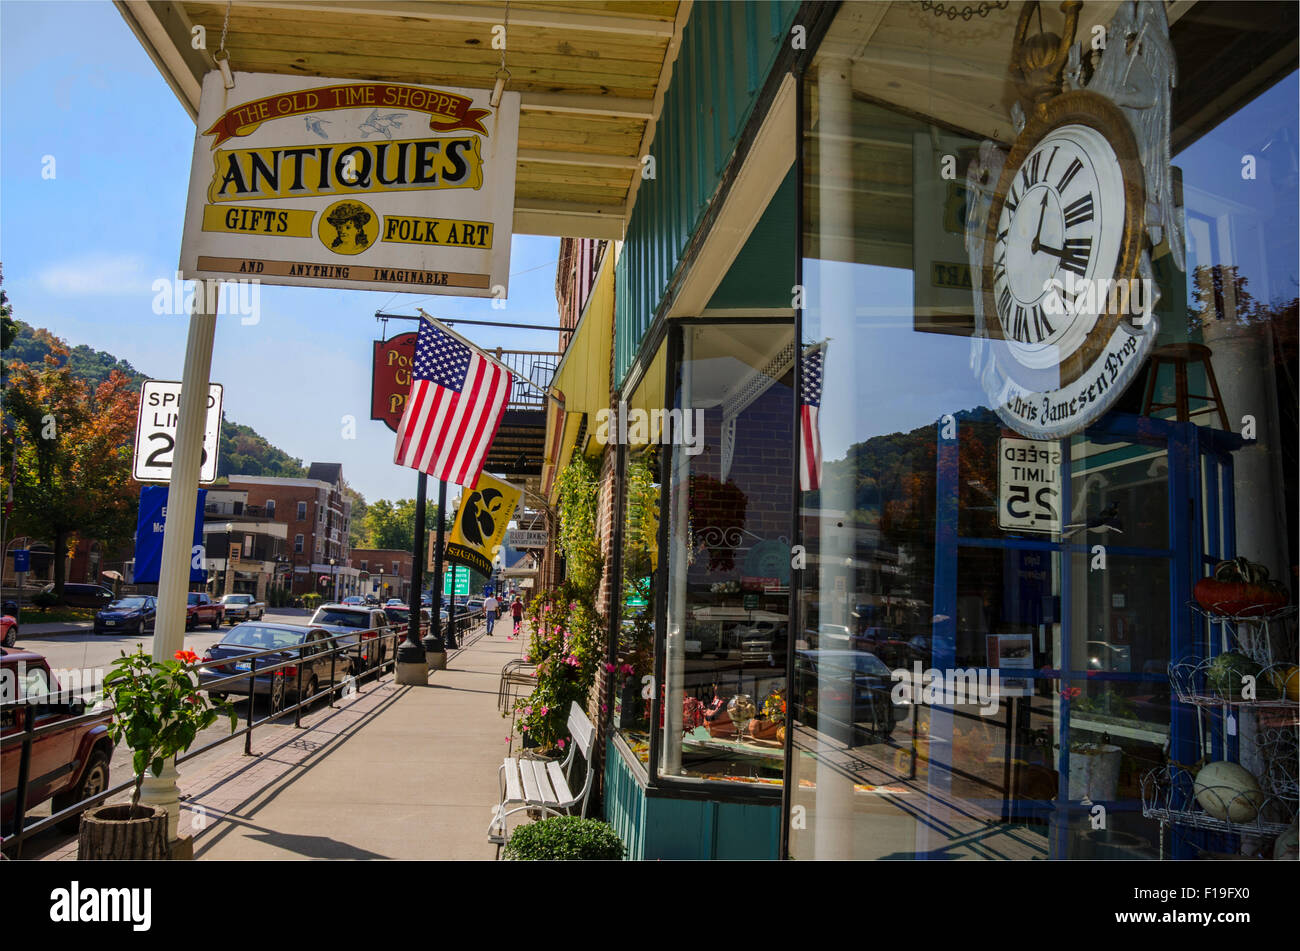 The Old Time Shoppe Antiques  store  in McGregor, Iowa Stock Photo